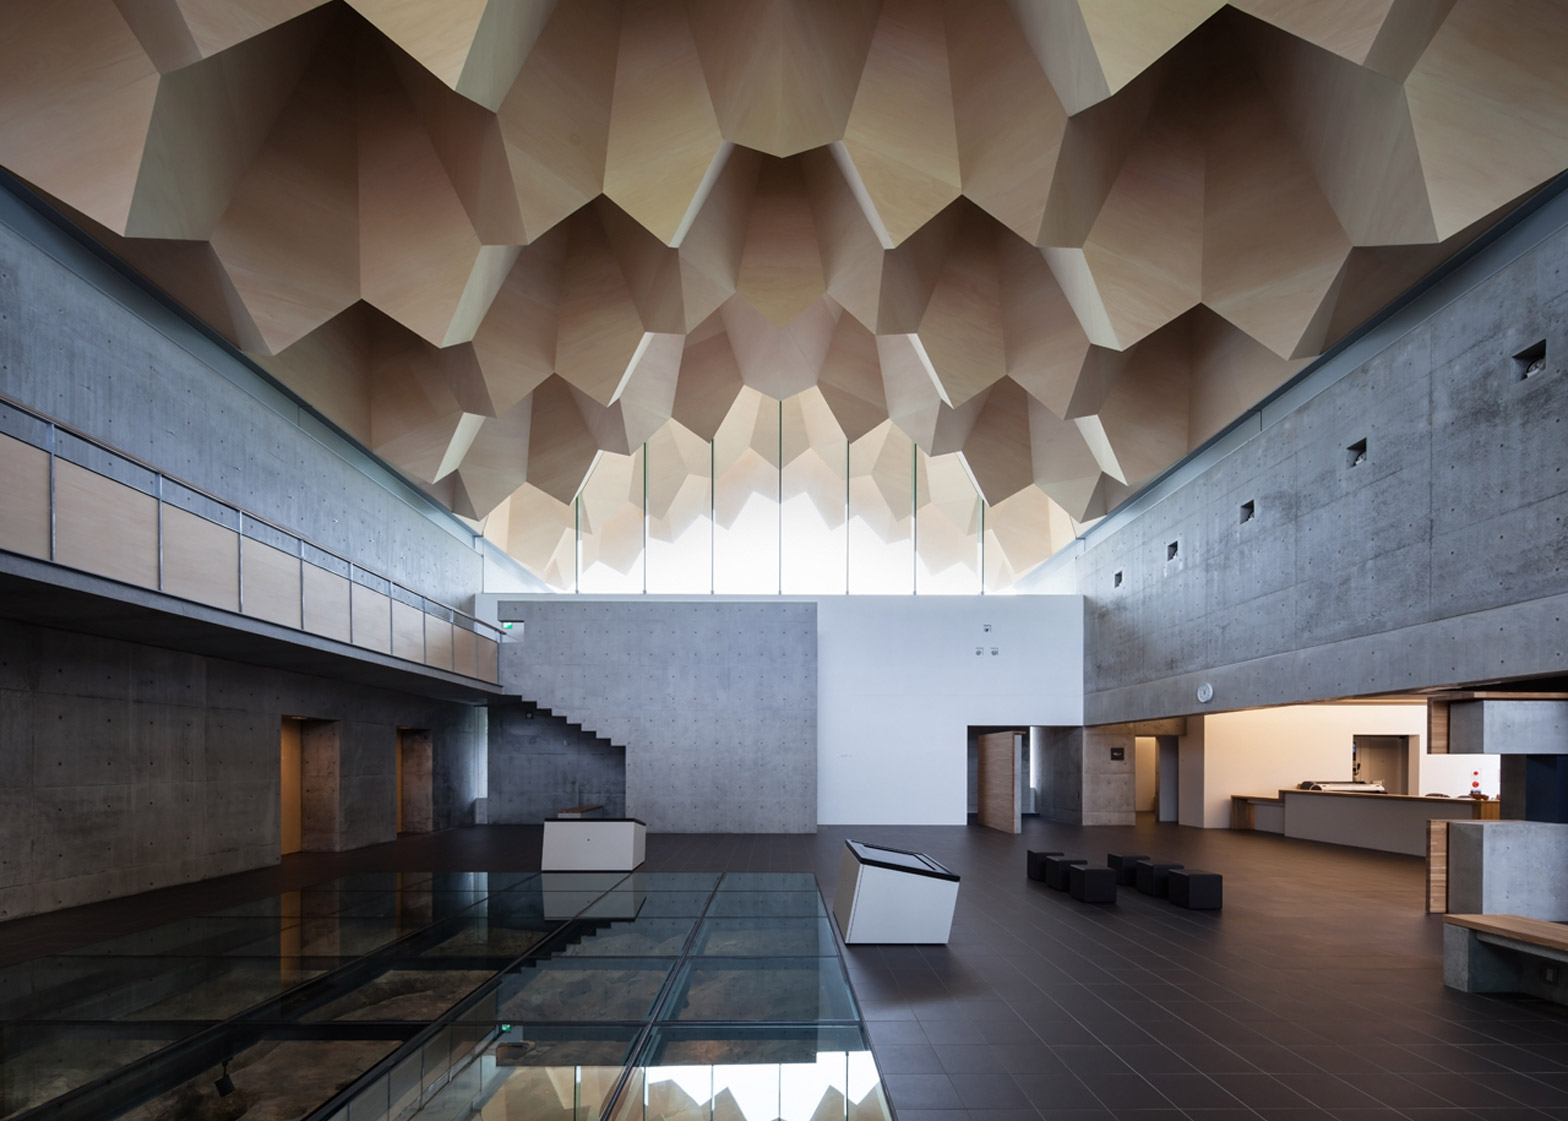 Jagged wooden roof frames museum dedicated to Japan's Jōmon period by Furuichi and Associates